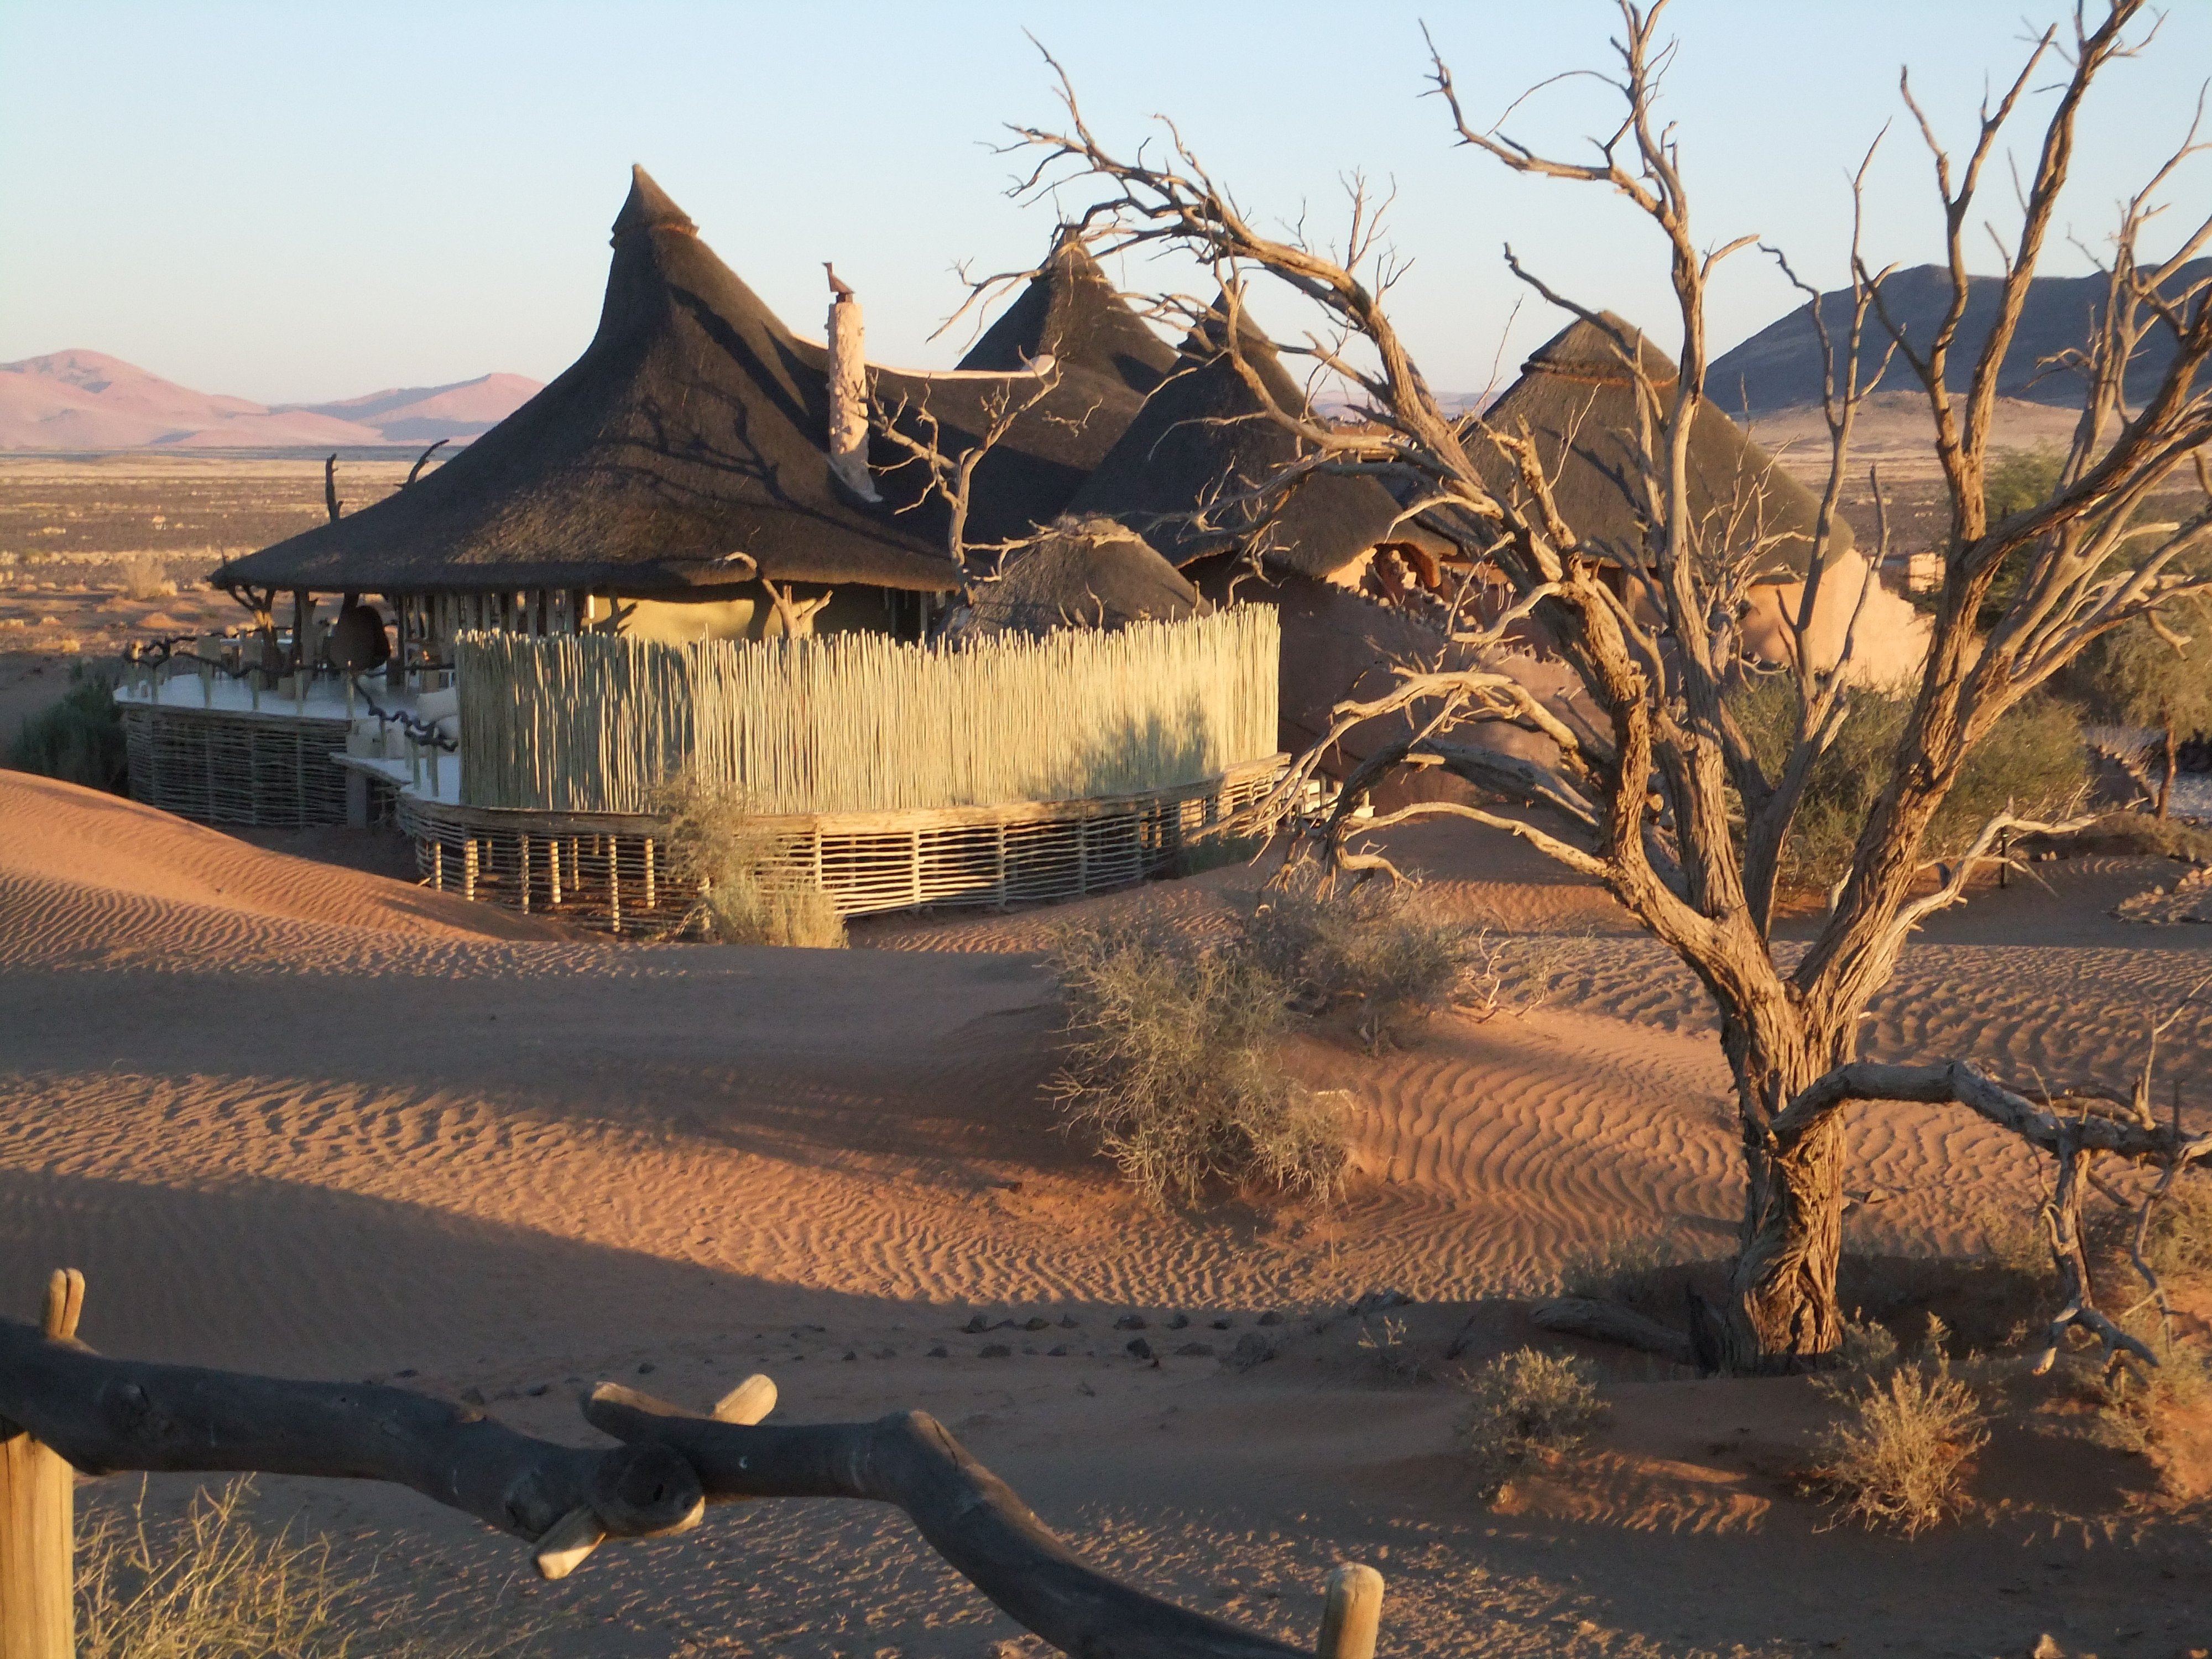 Camp in Namibia